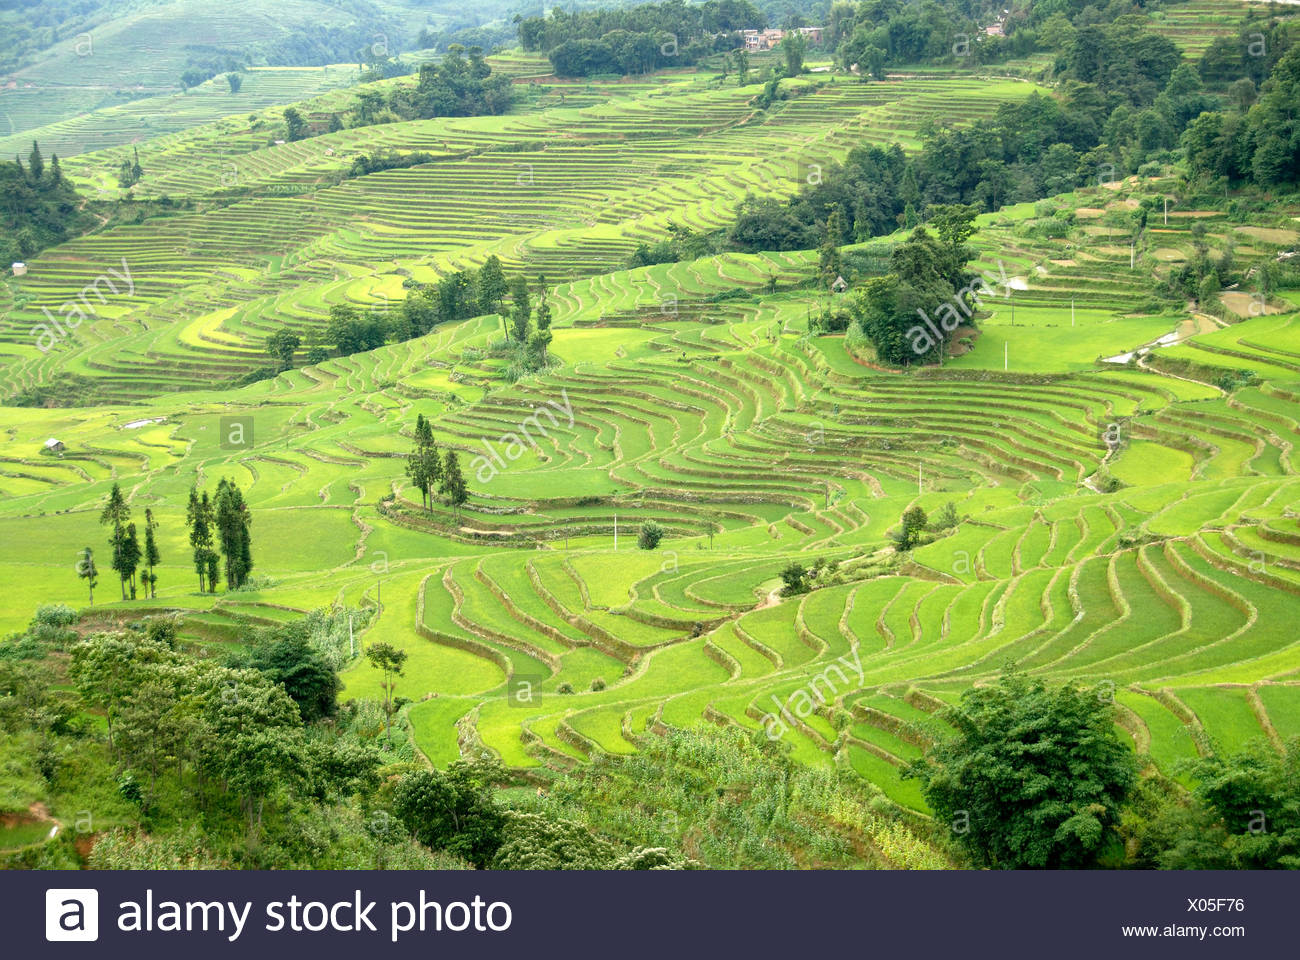 Green rice fields on the hillside, terraced rice fields, Yuanyang, in Xinji, Yunnan Province, People's Republic of China, Asia - Stock Image